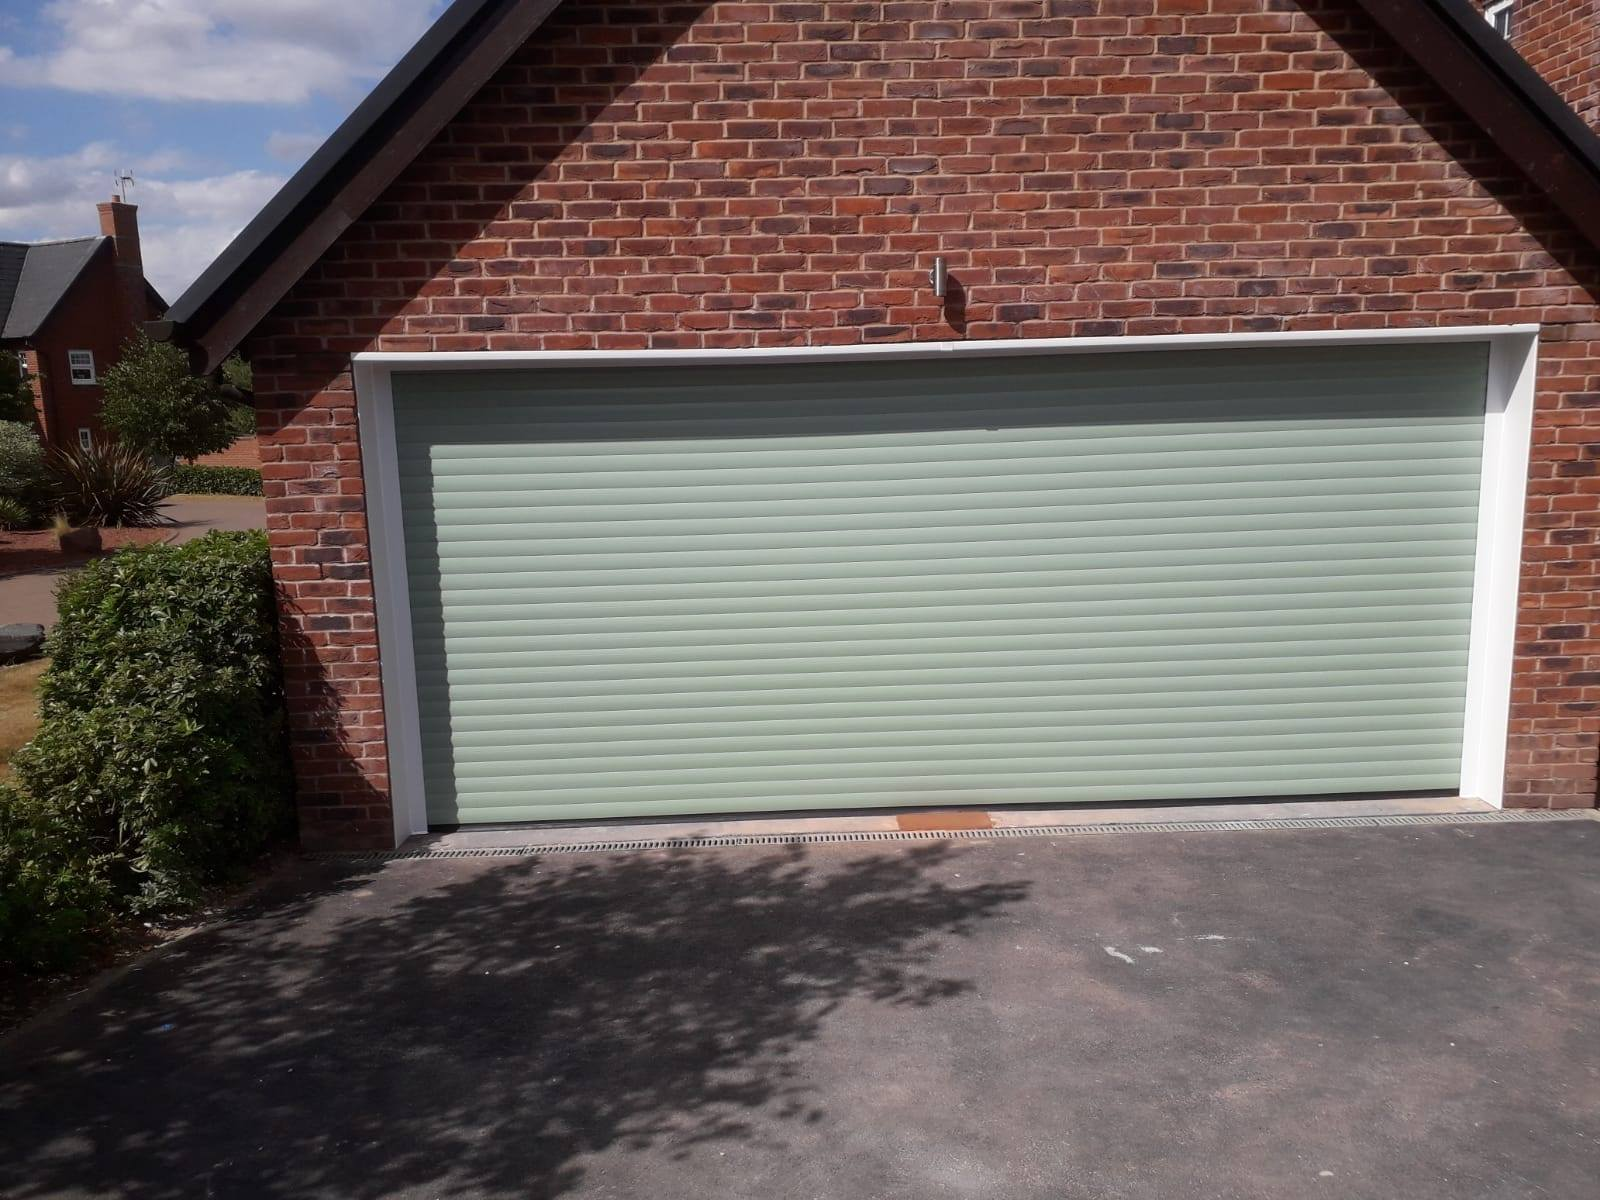 1 x double roller garage door in a chartwell green finish with a white surround